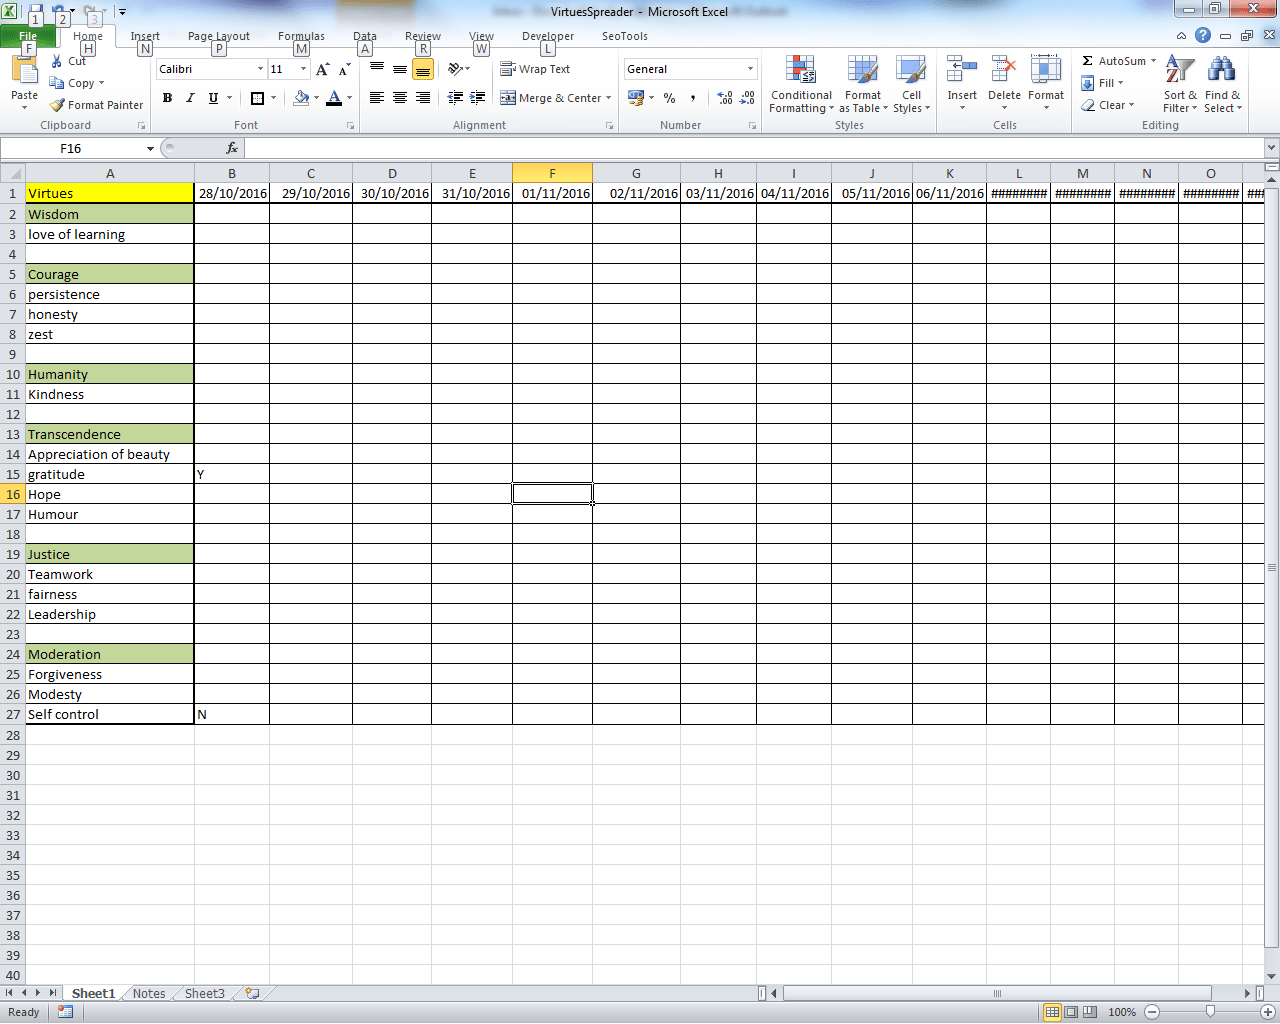 Virtues Spreadsheet Small Business Dad